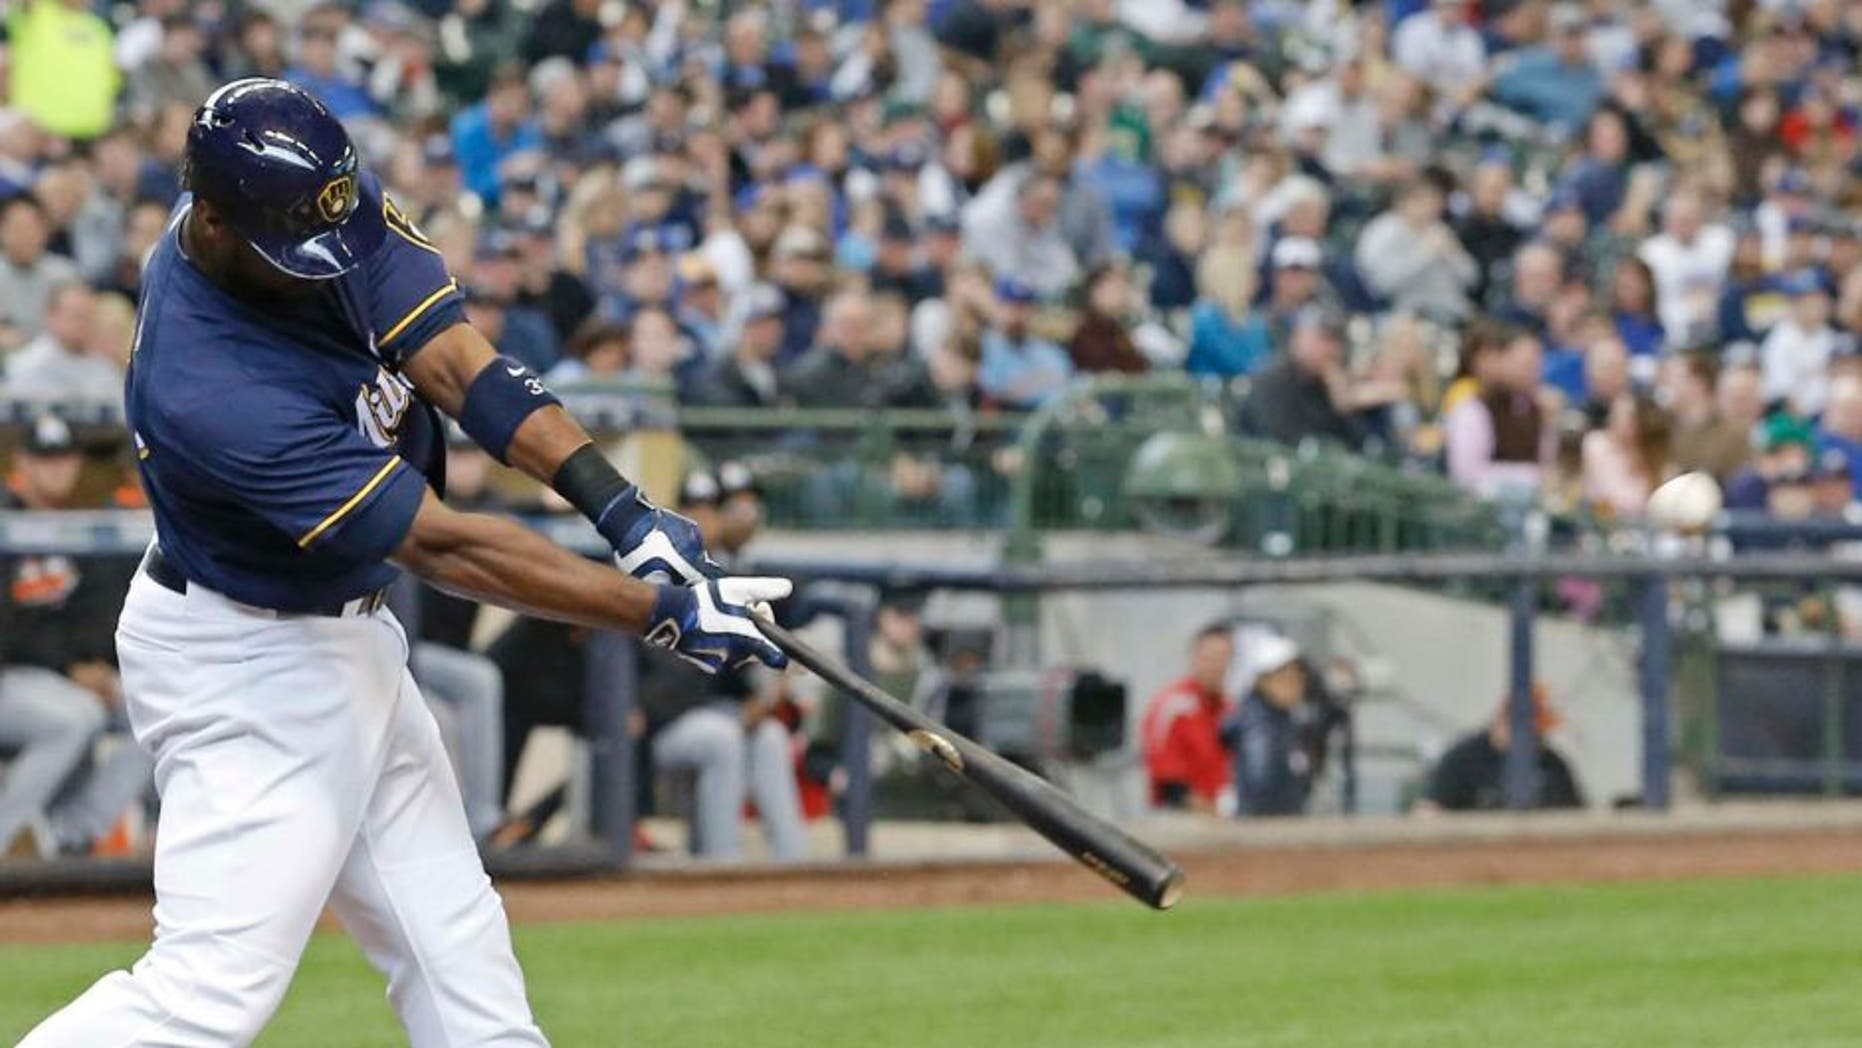 Sunday, May 1: The Milwaukee Brewers' Chris Carter hits a two-run home run during the third inning against the Miami Marlins in Milwaukee. Carter had two homers in the 14-5 win.